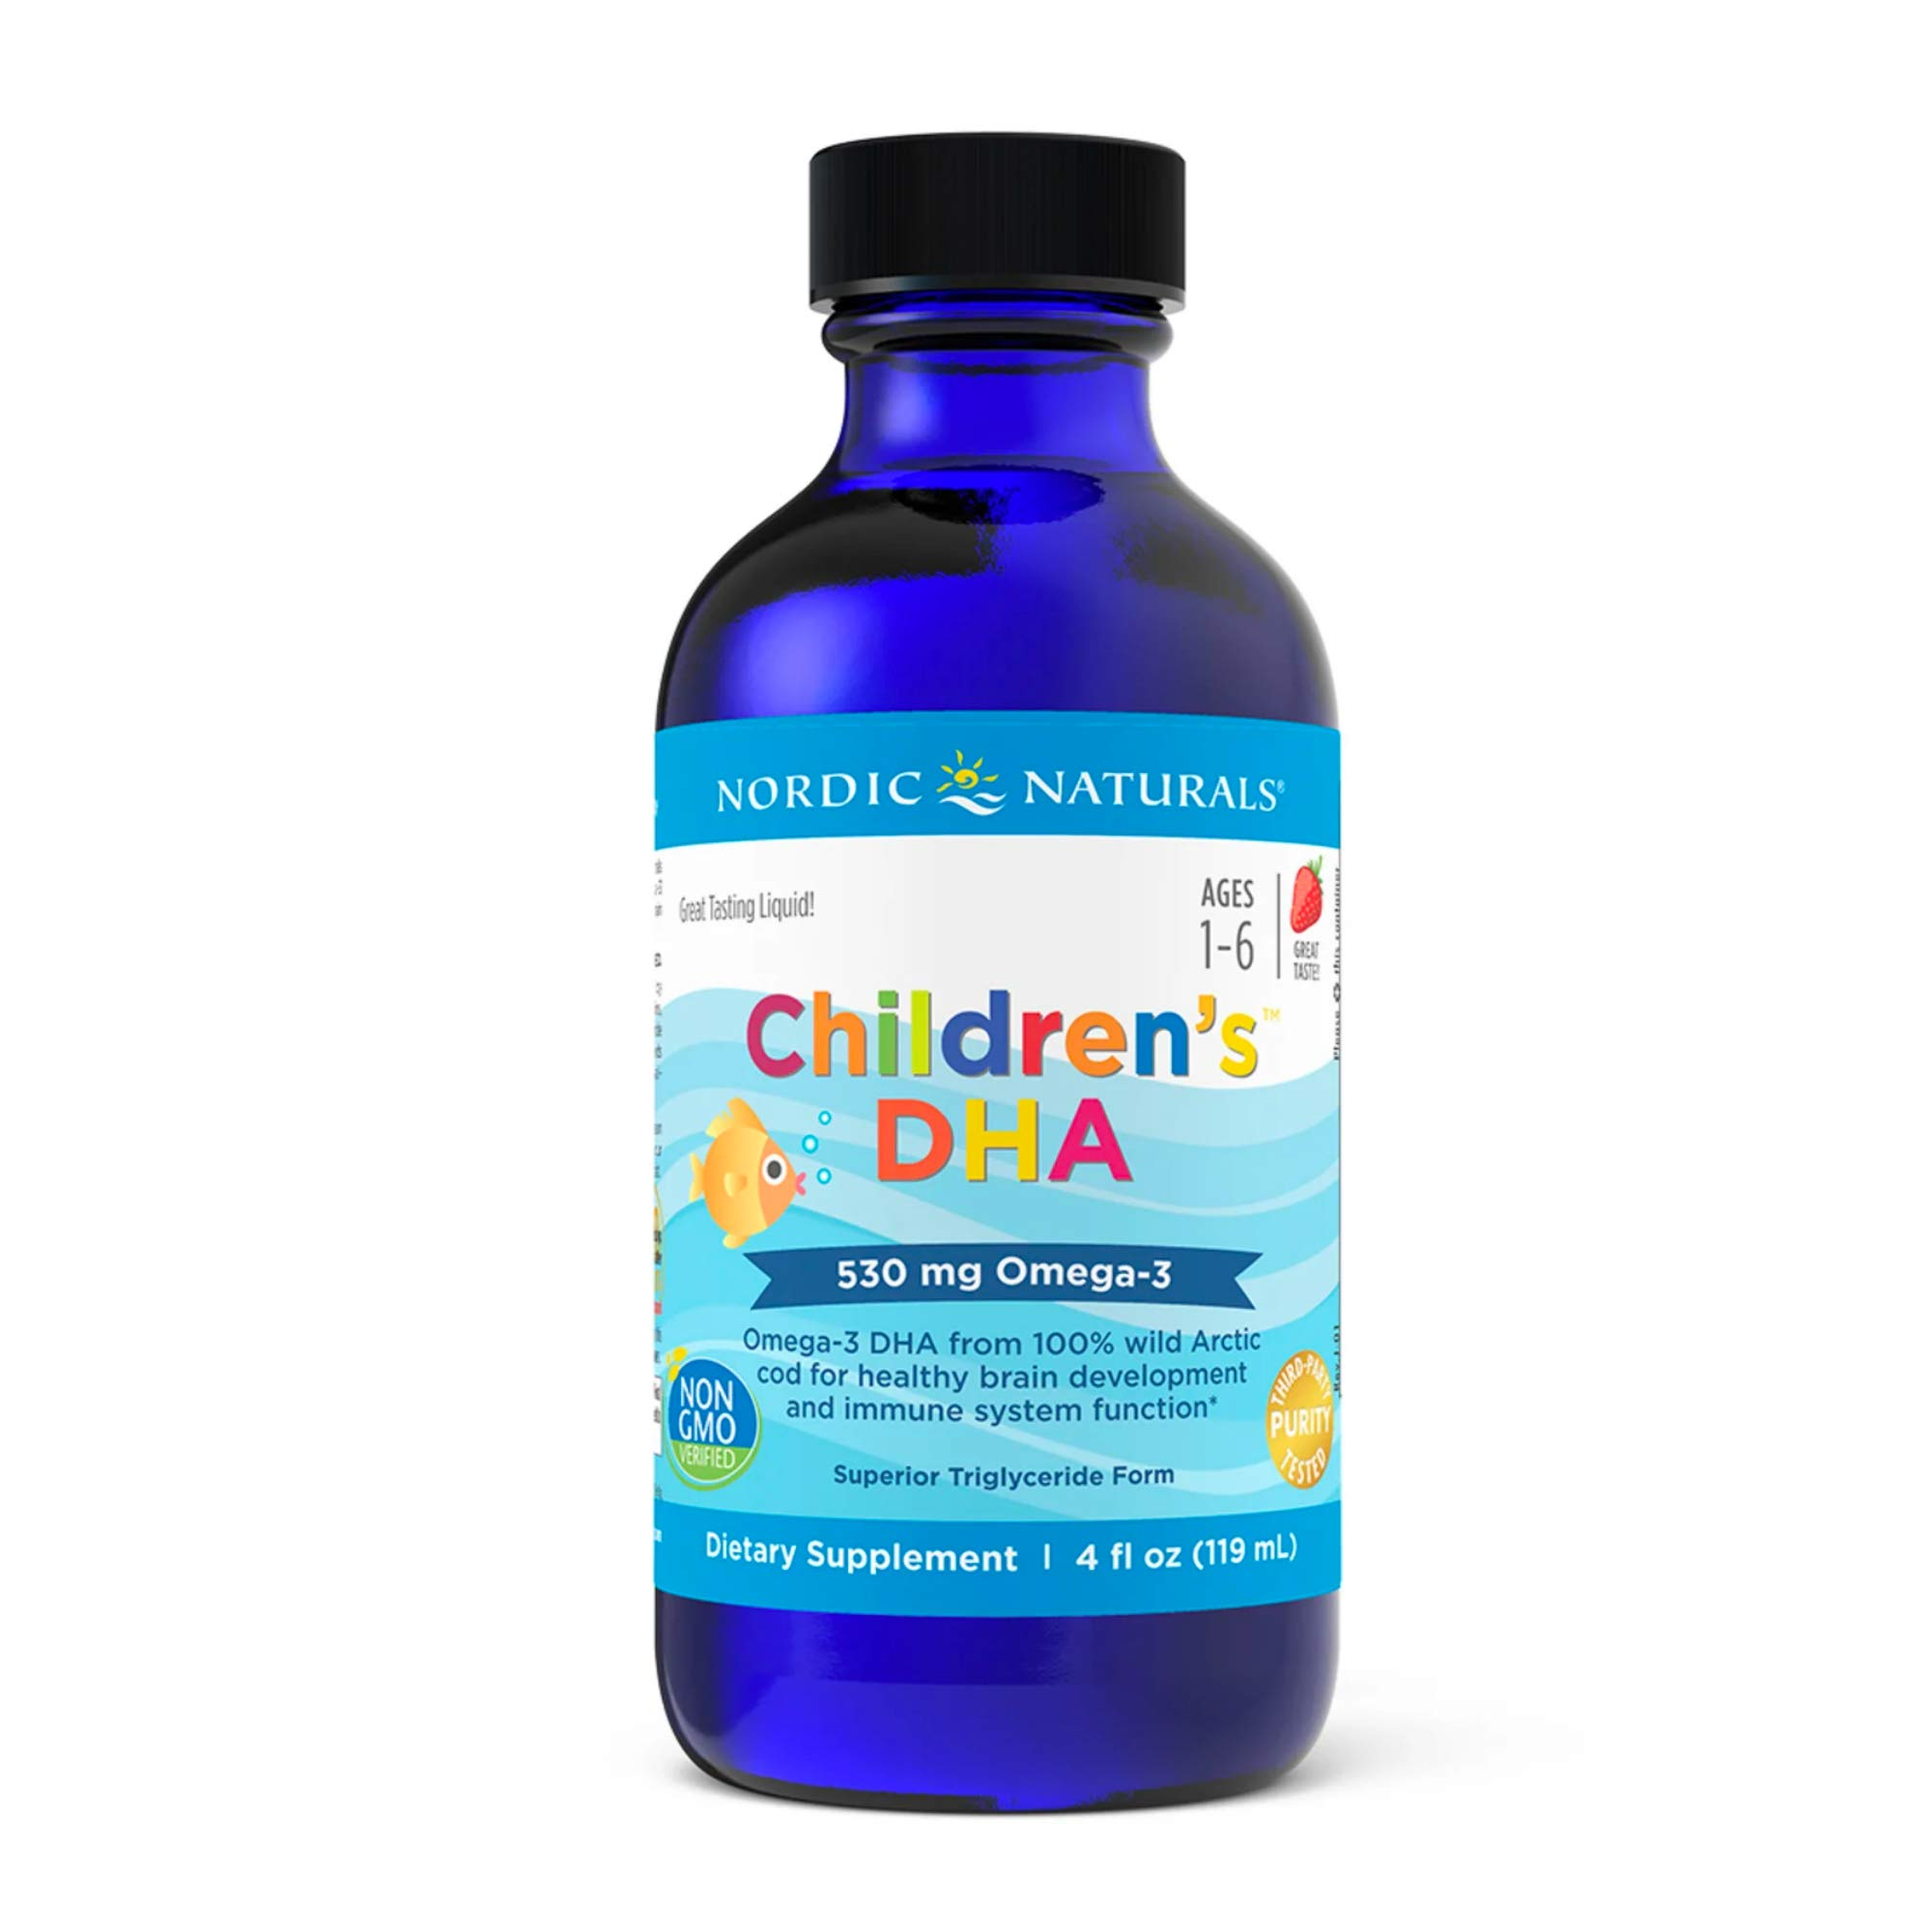 Nordic Naturals Children's DHA, Strawberry - 4 oz - 530 mg Omega-3 with EPA & DHA - Brain Development & Function - Non-GMO - 48 Servings